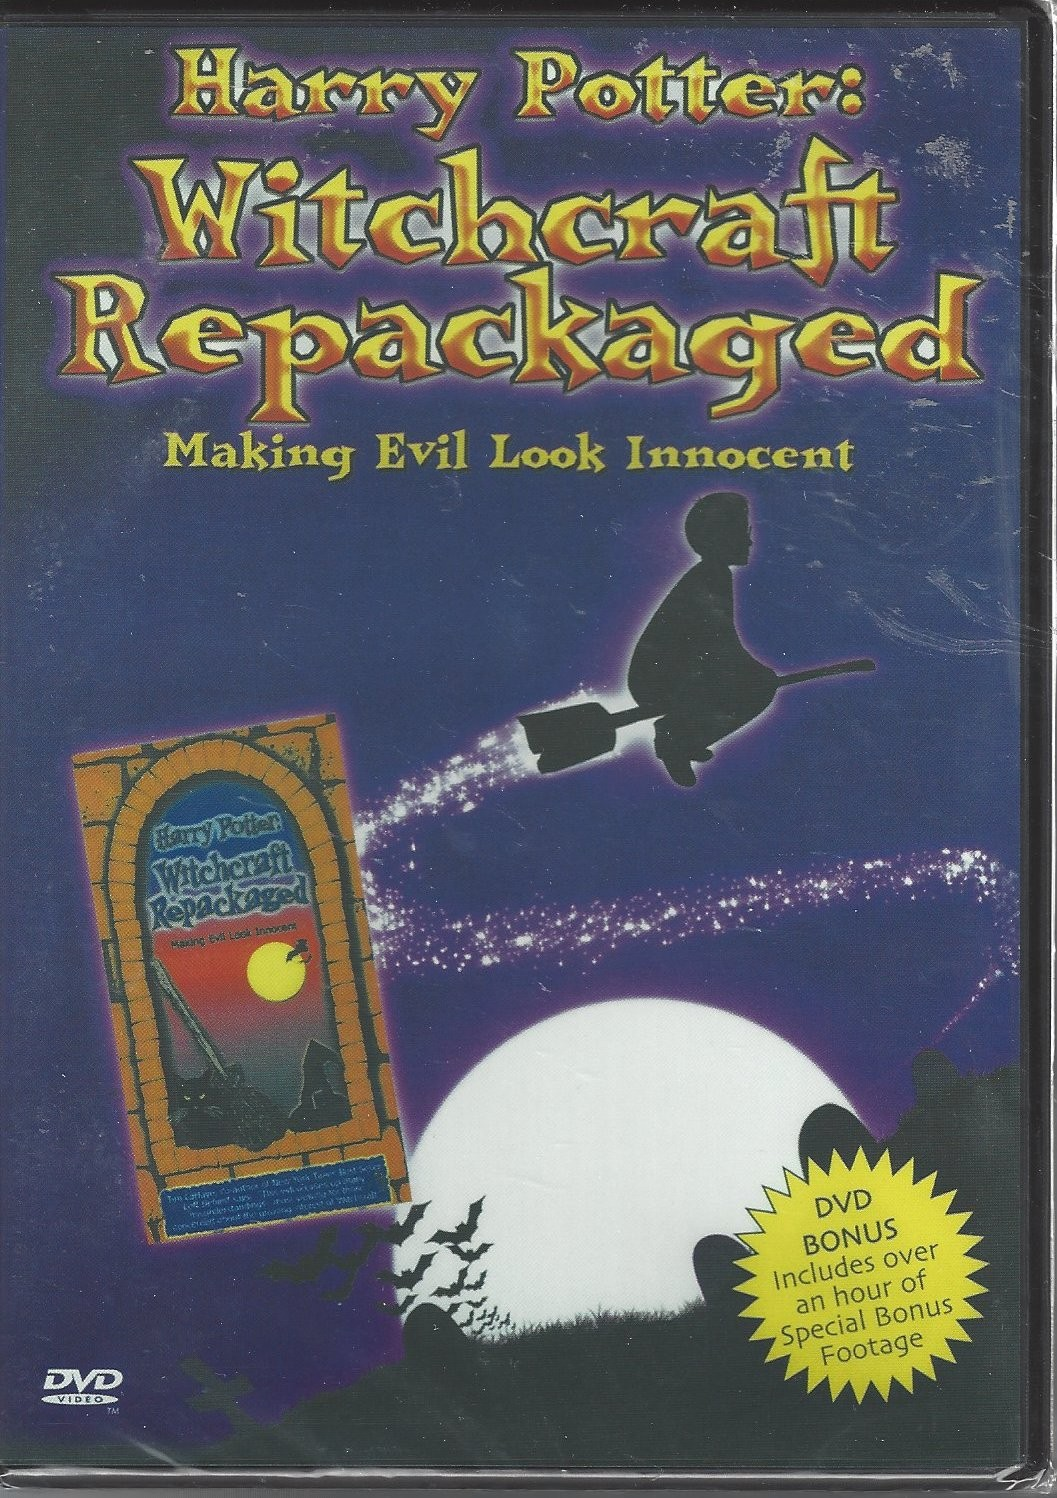 Harry Potter:  Witchcraft Repackaged  Making Evil Look Innocent    Front